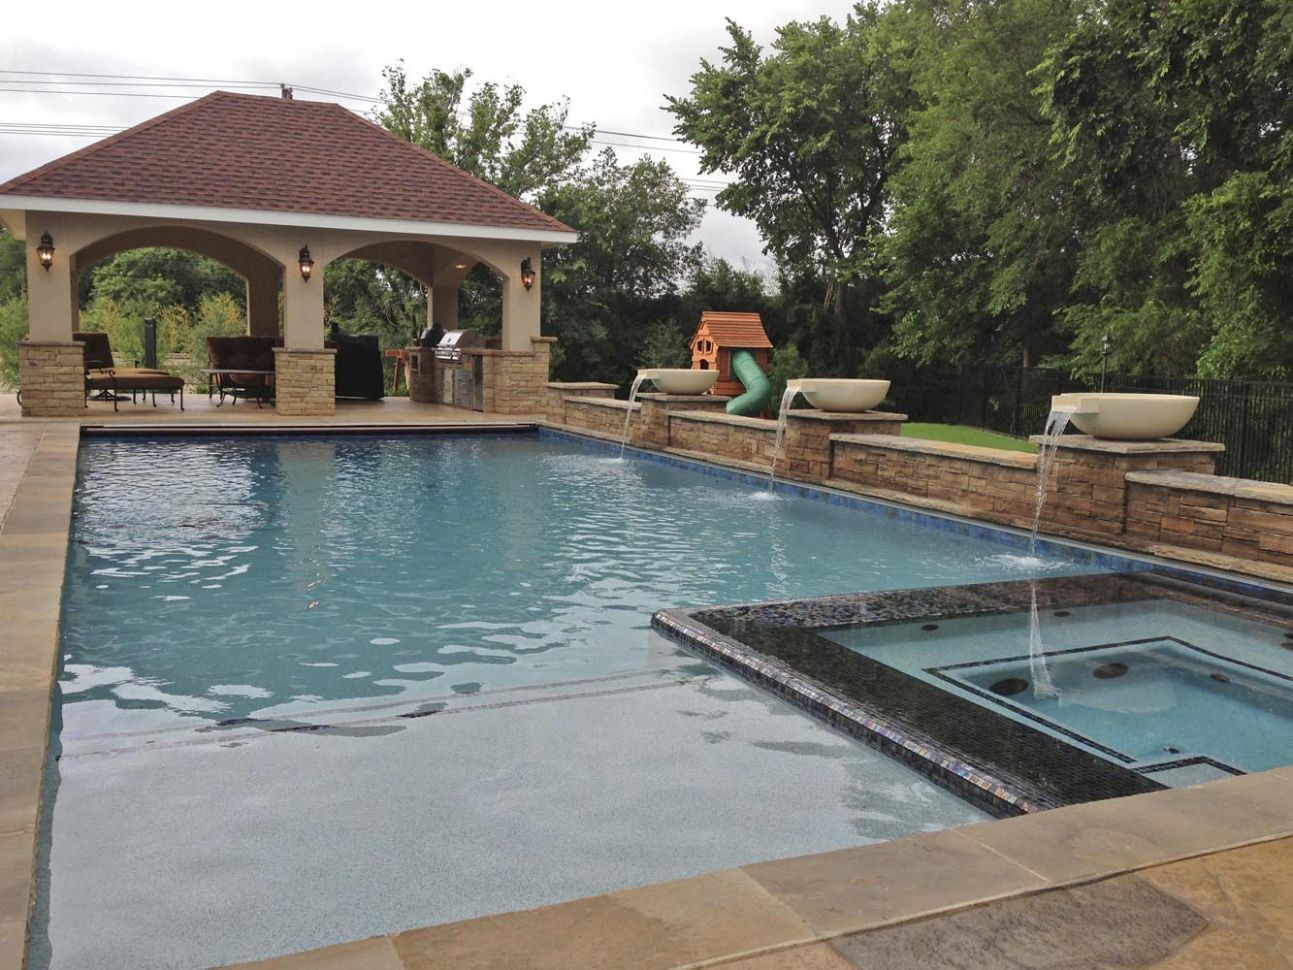 12 Impressive Inground Hot Tub and Pool Ideas For Your Home | Carnahan - pool ideas with spa